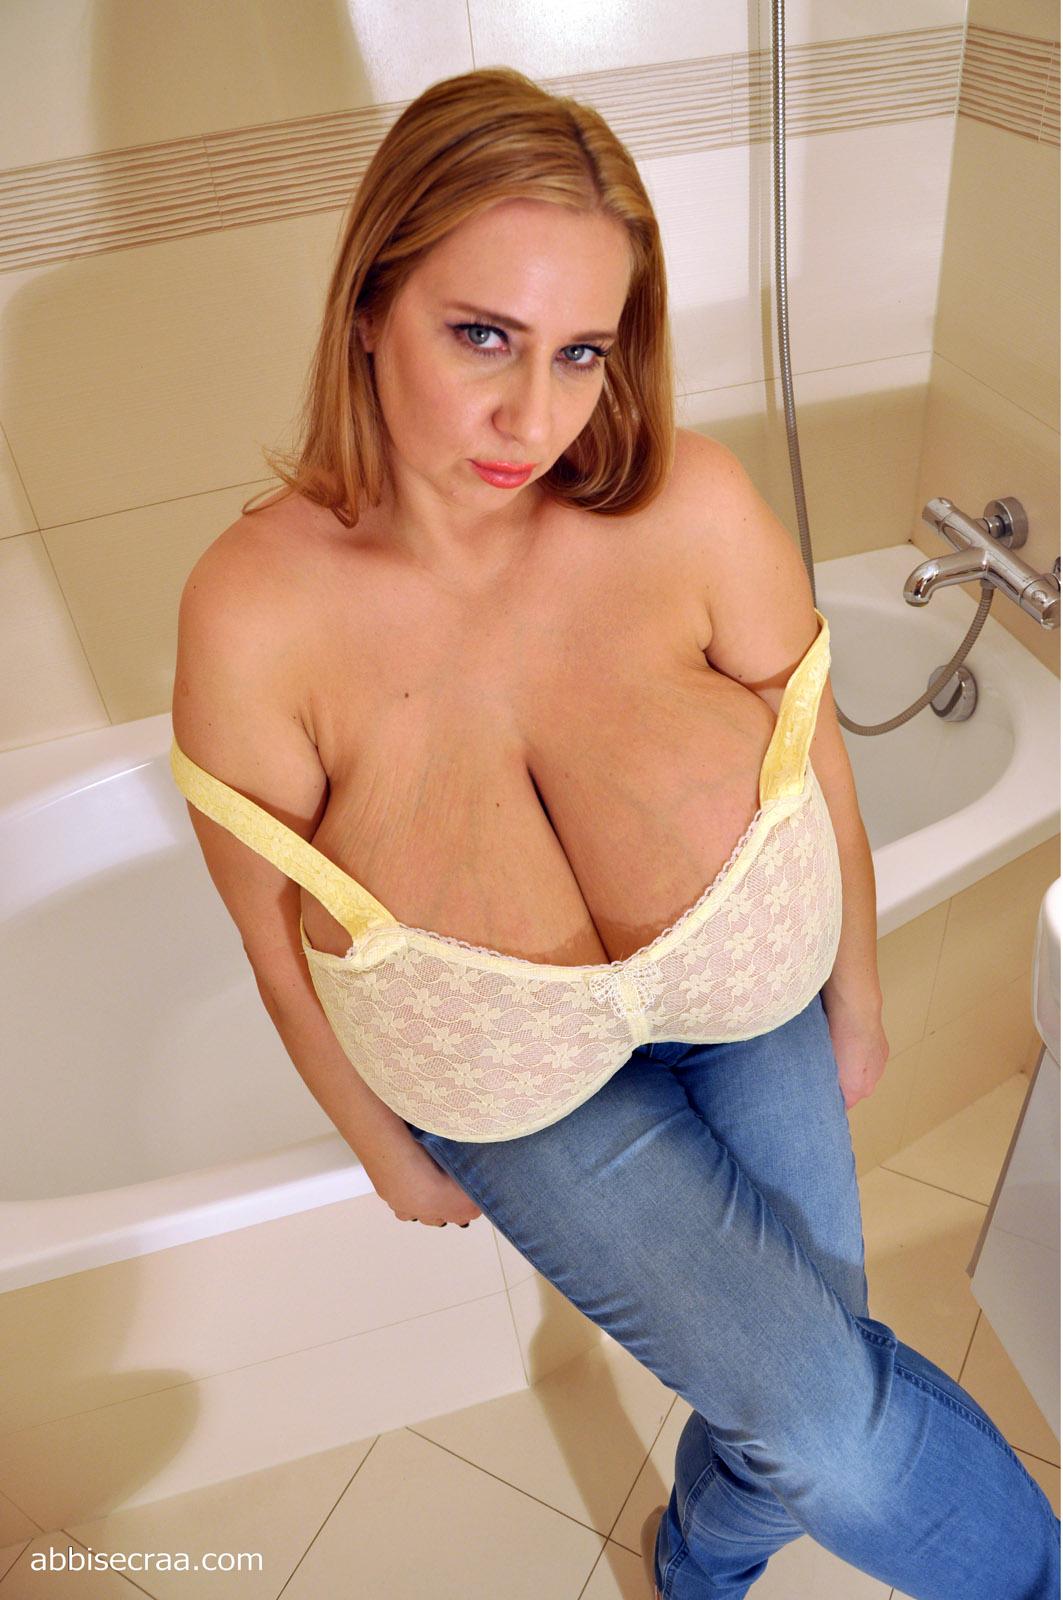 Biggest breasts ever on a 9 month pregnant milf - 1 part 10